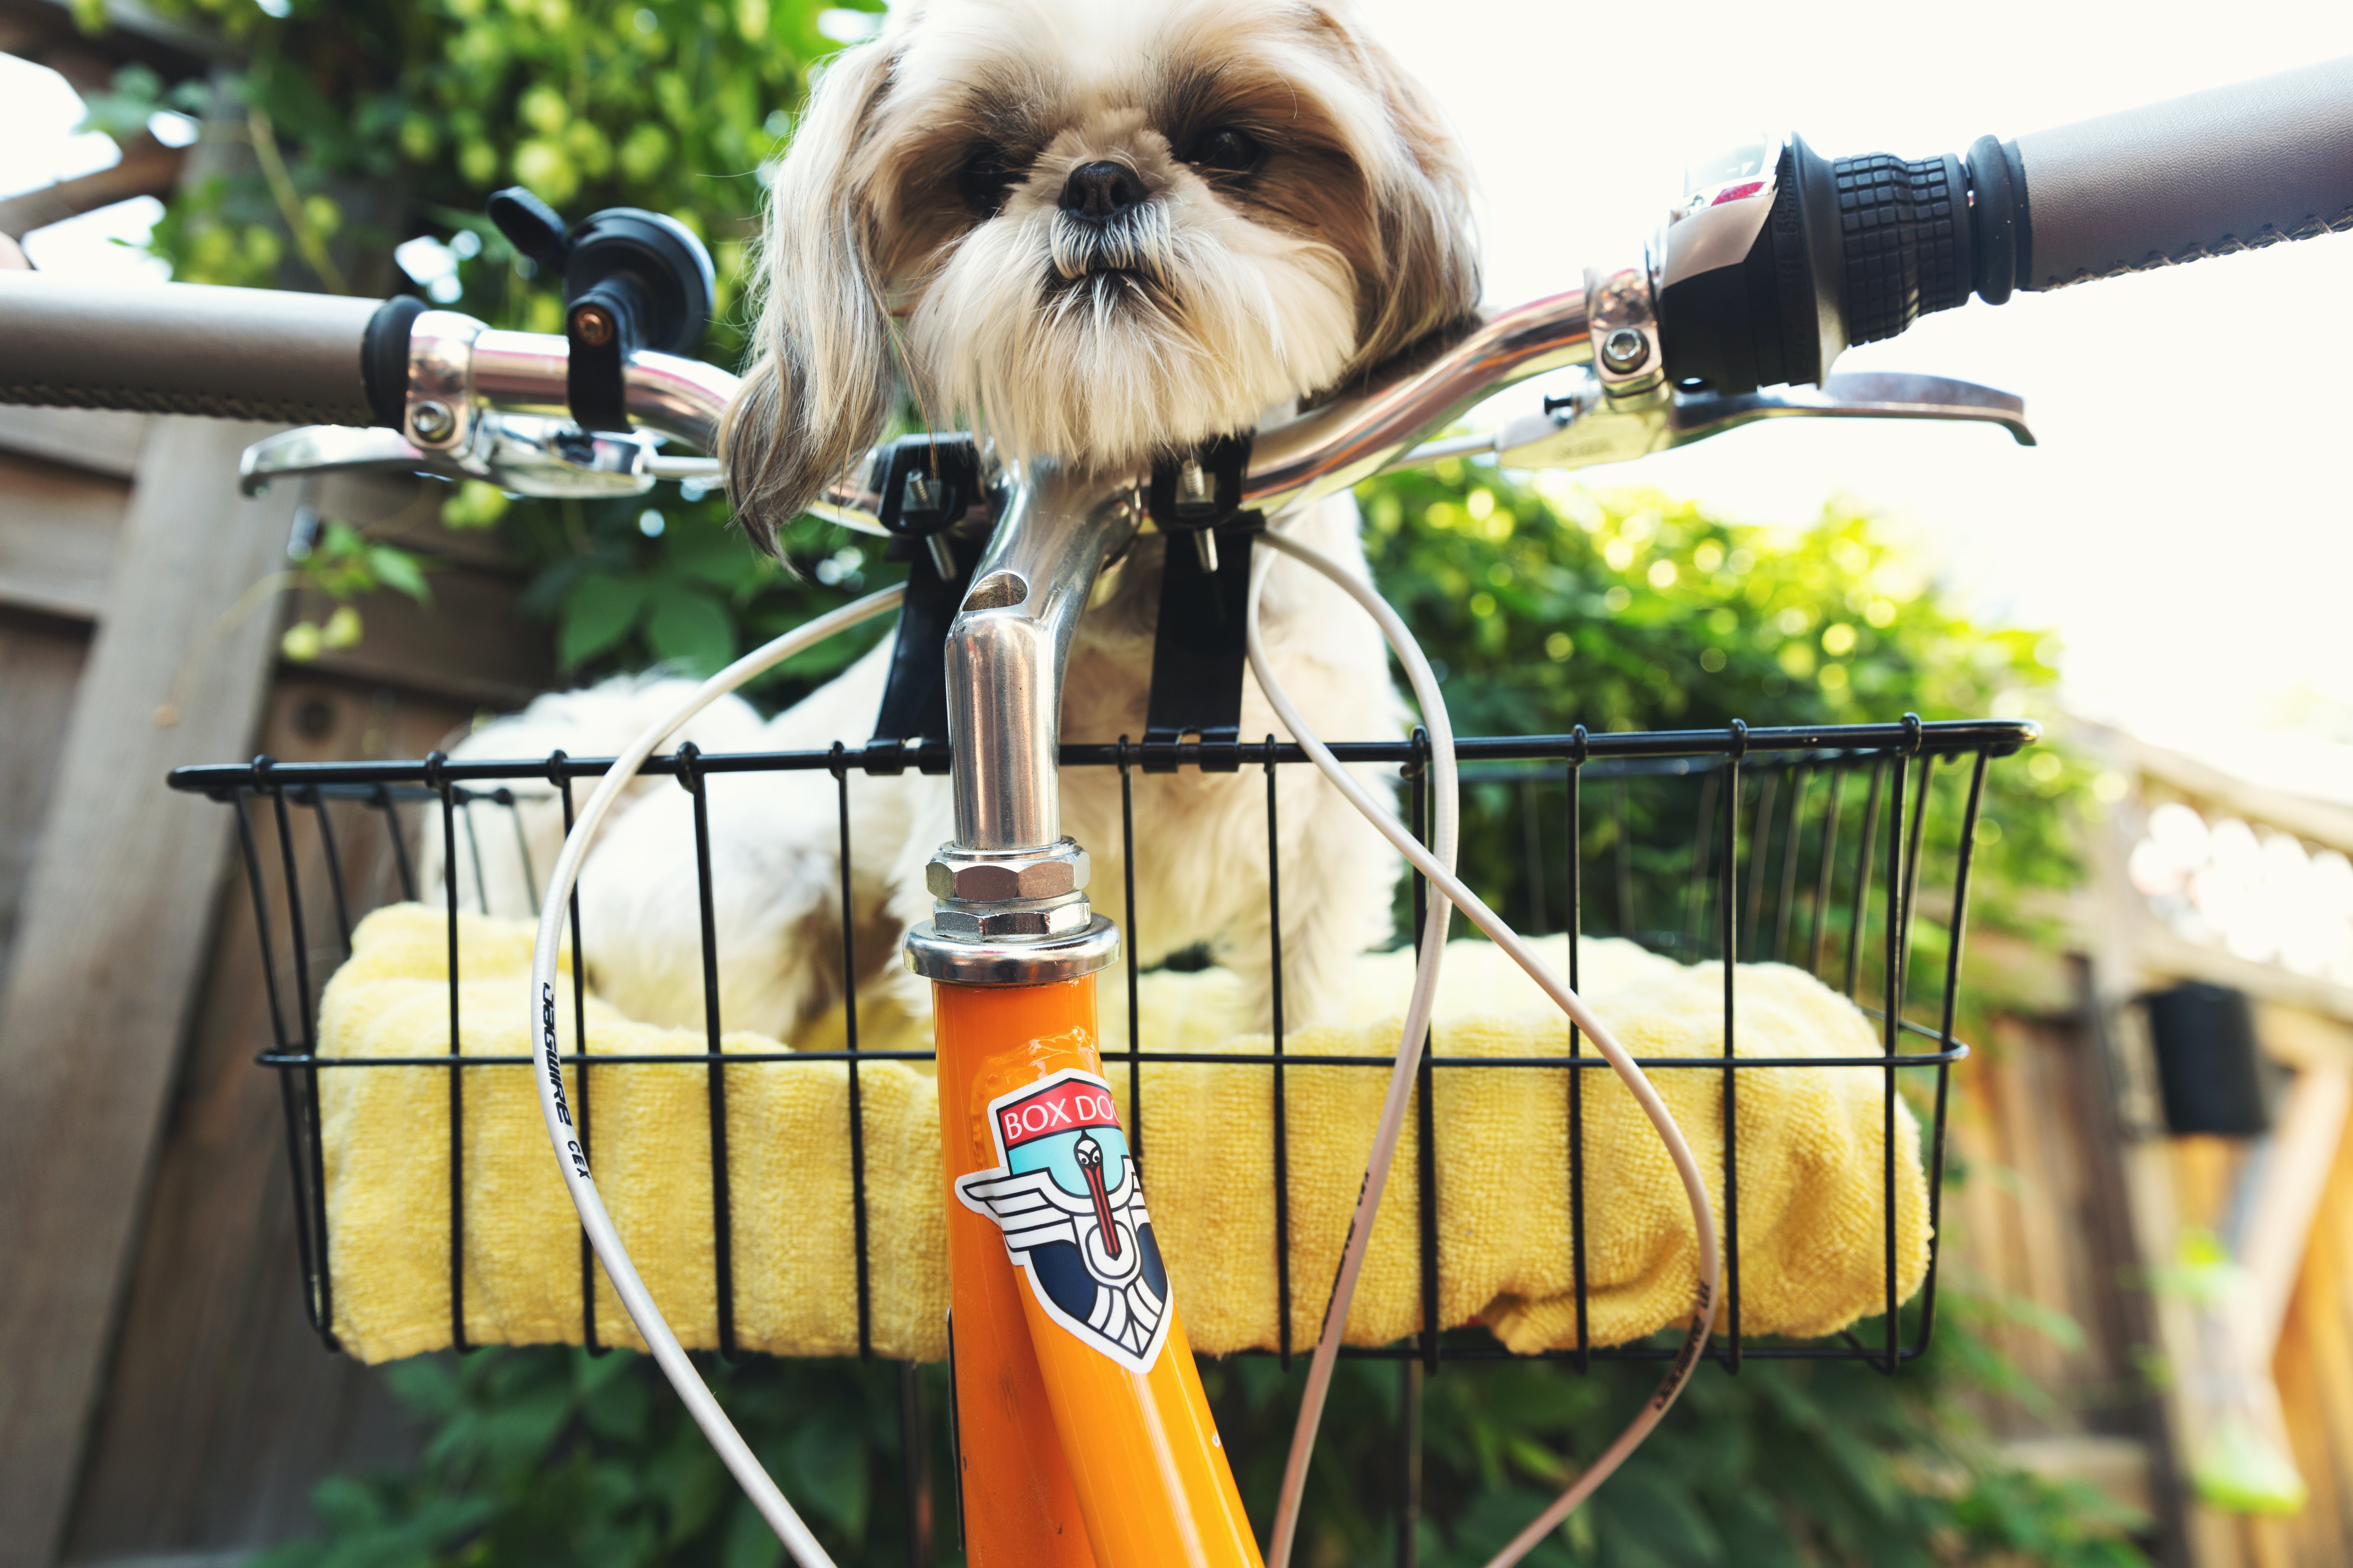 brown and white dog on bicycle basket